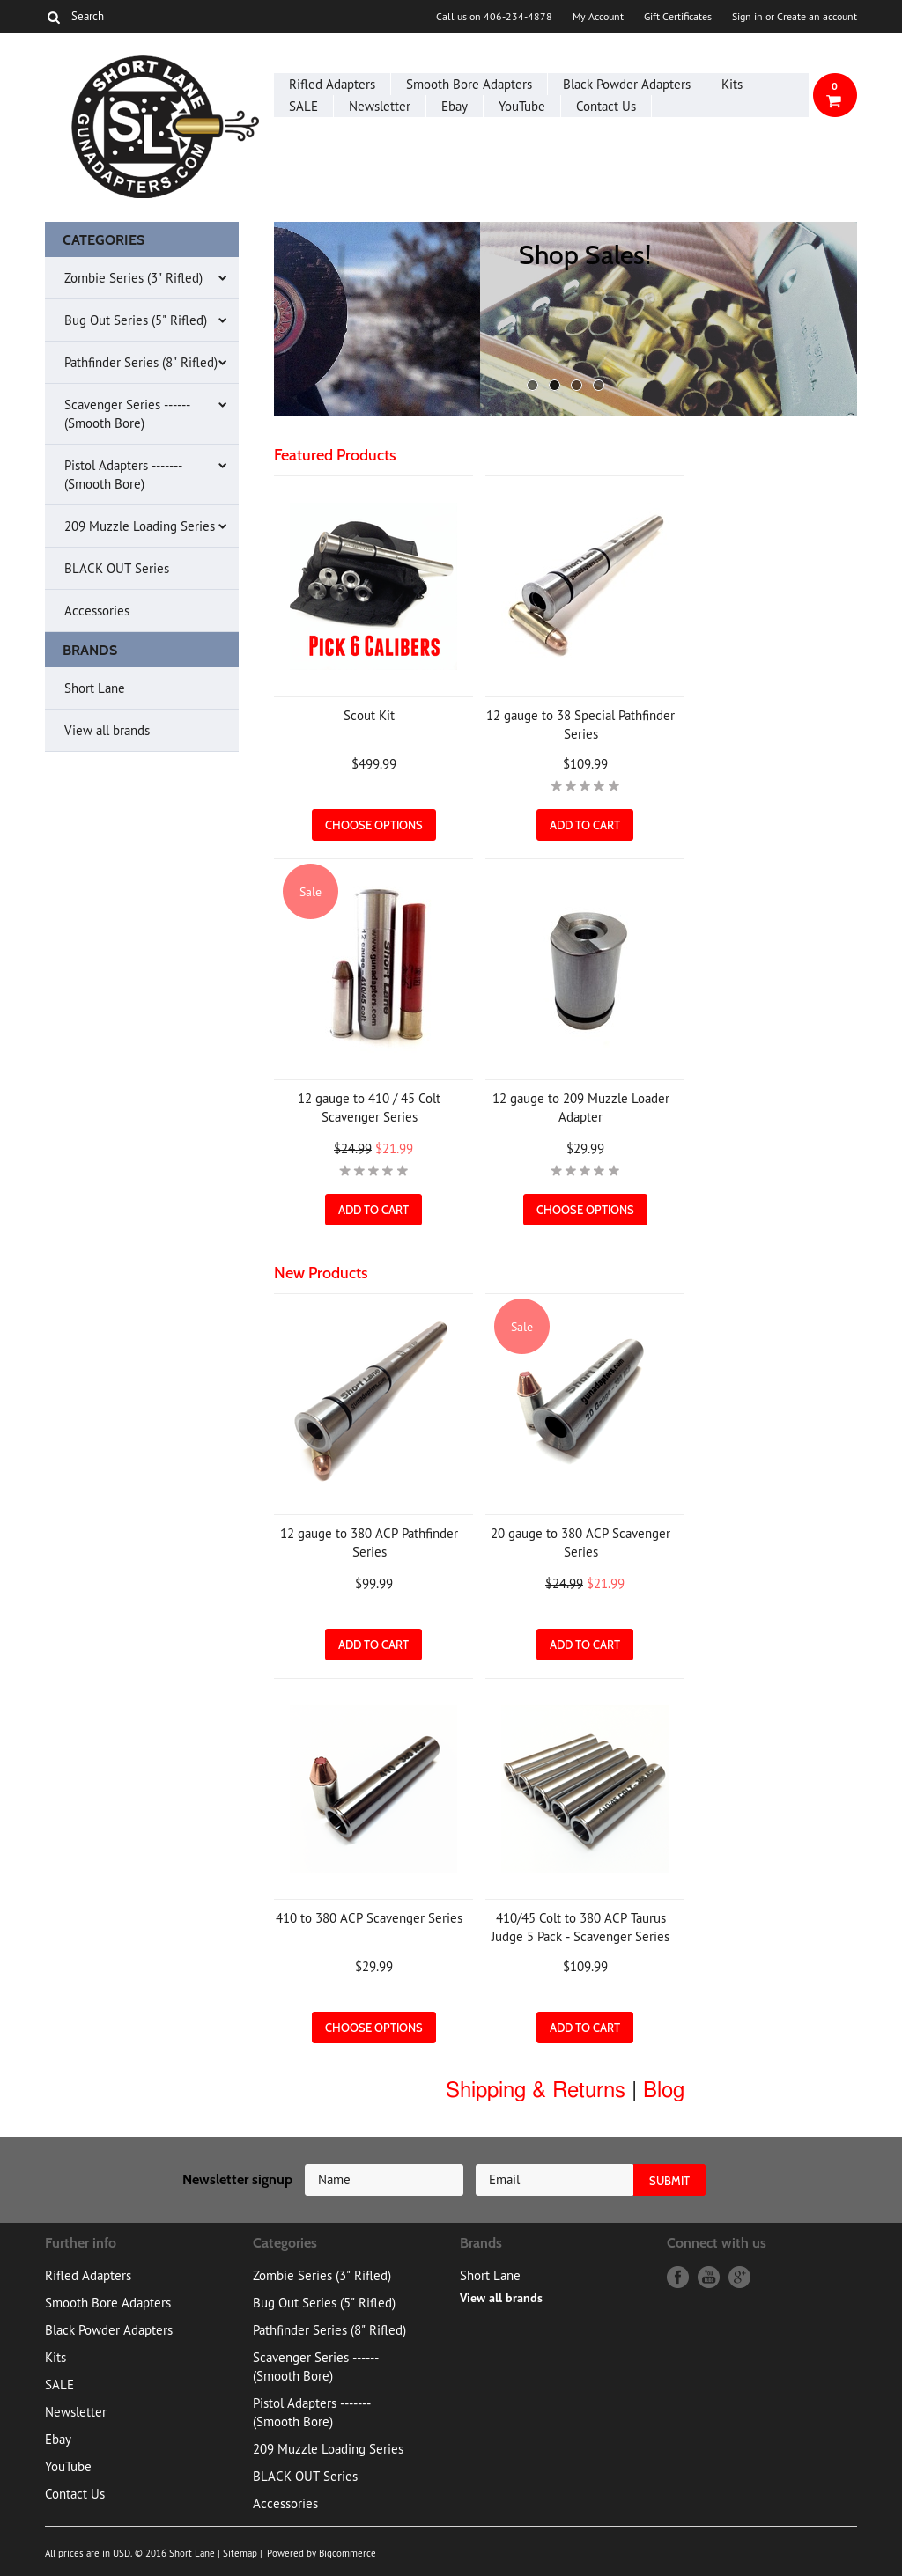 Gunadapters Competitors, Revenue and Employees - Owler Company Profile